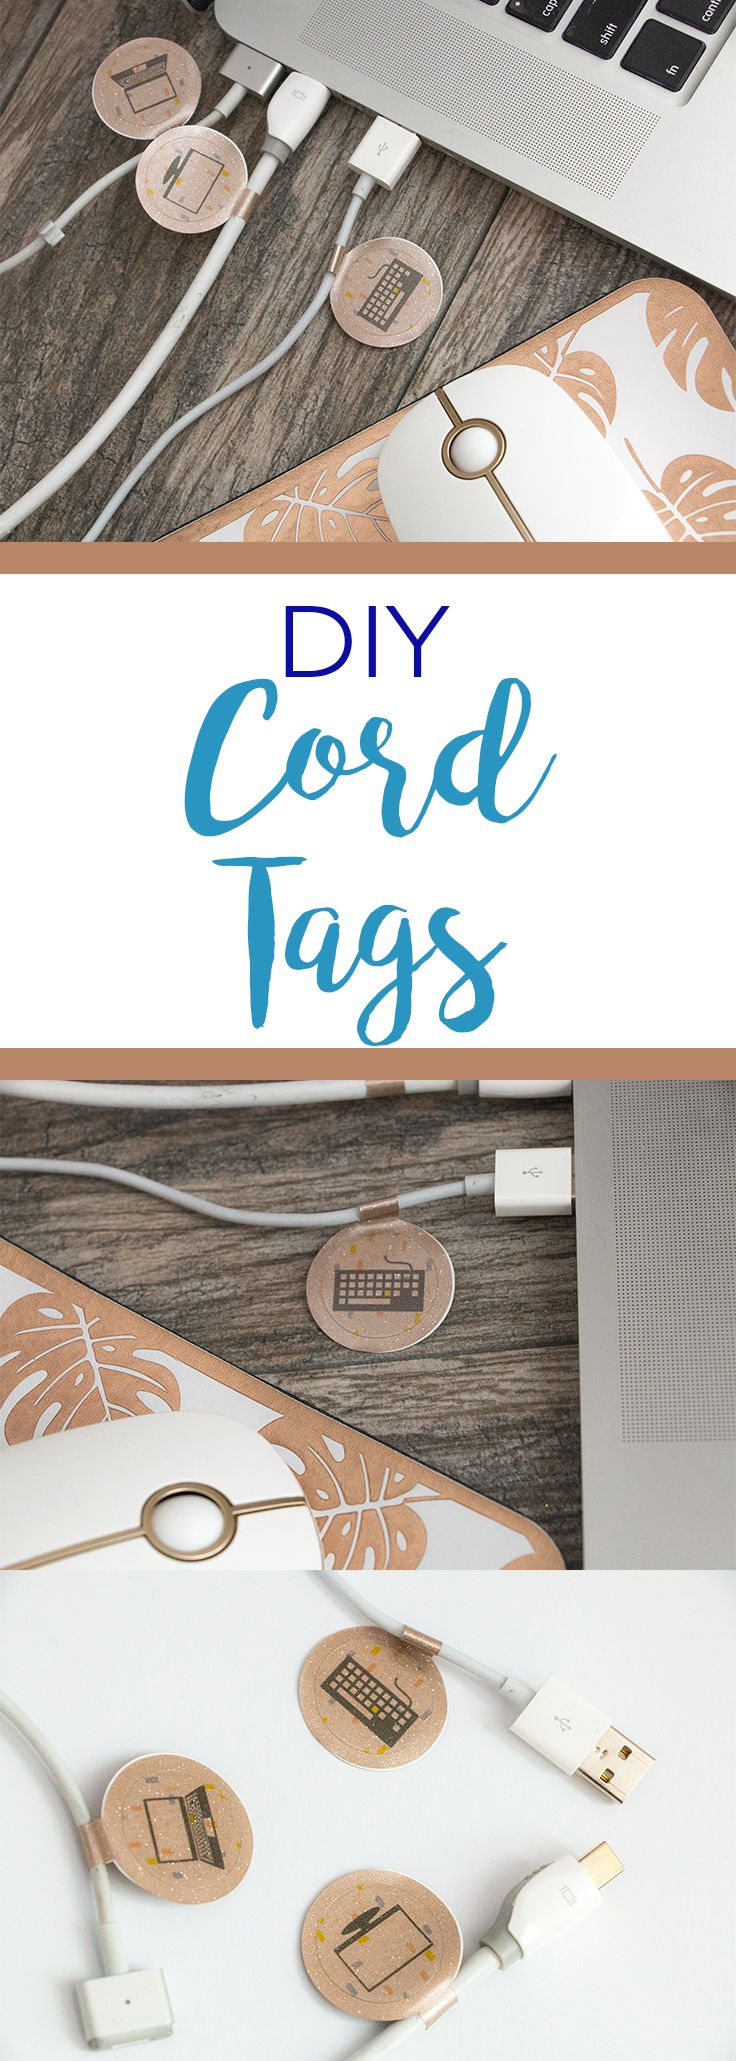 Easily organize your cords with these fun cord tags, using only vinyl and sticker paper.